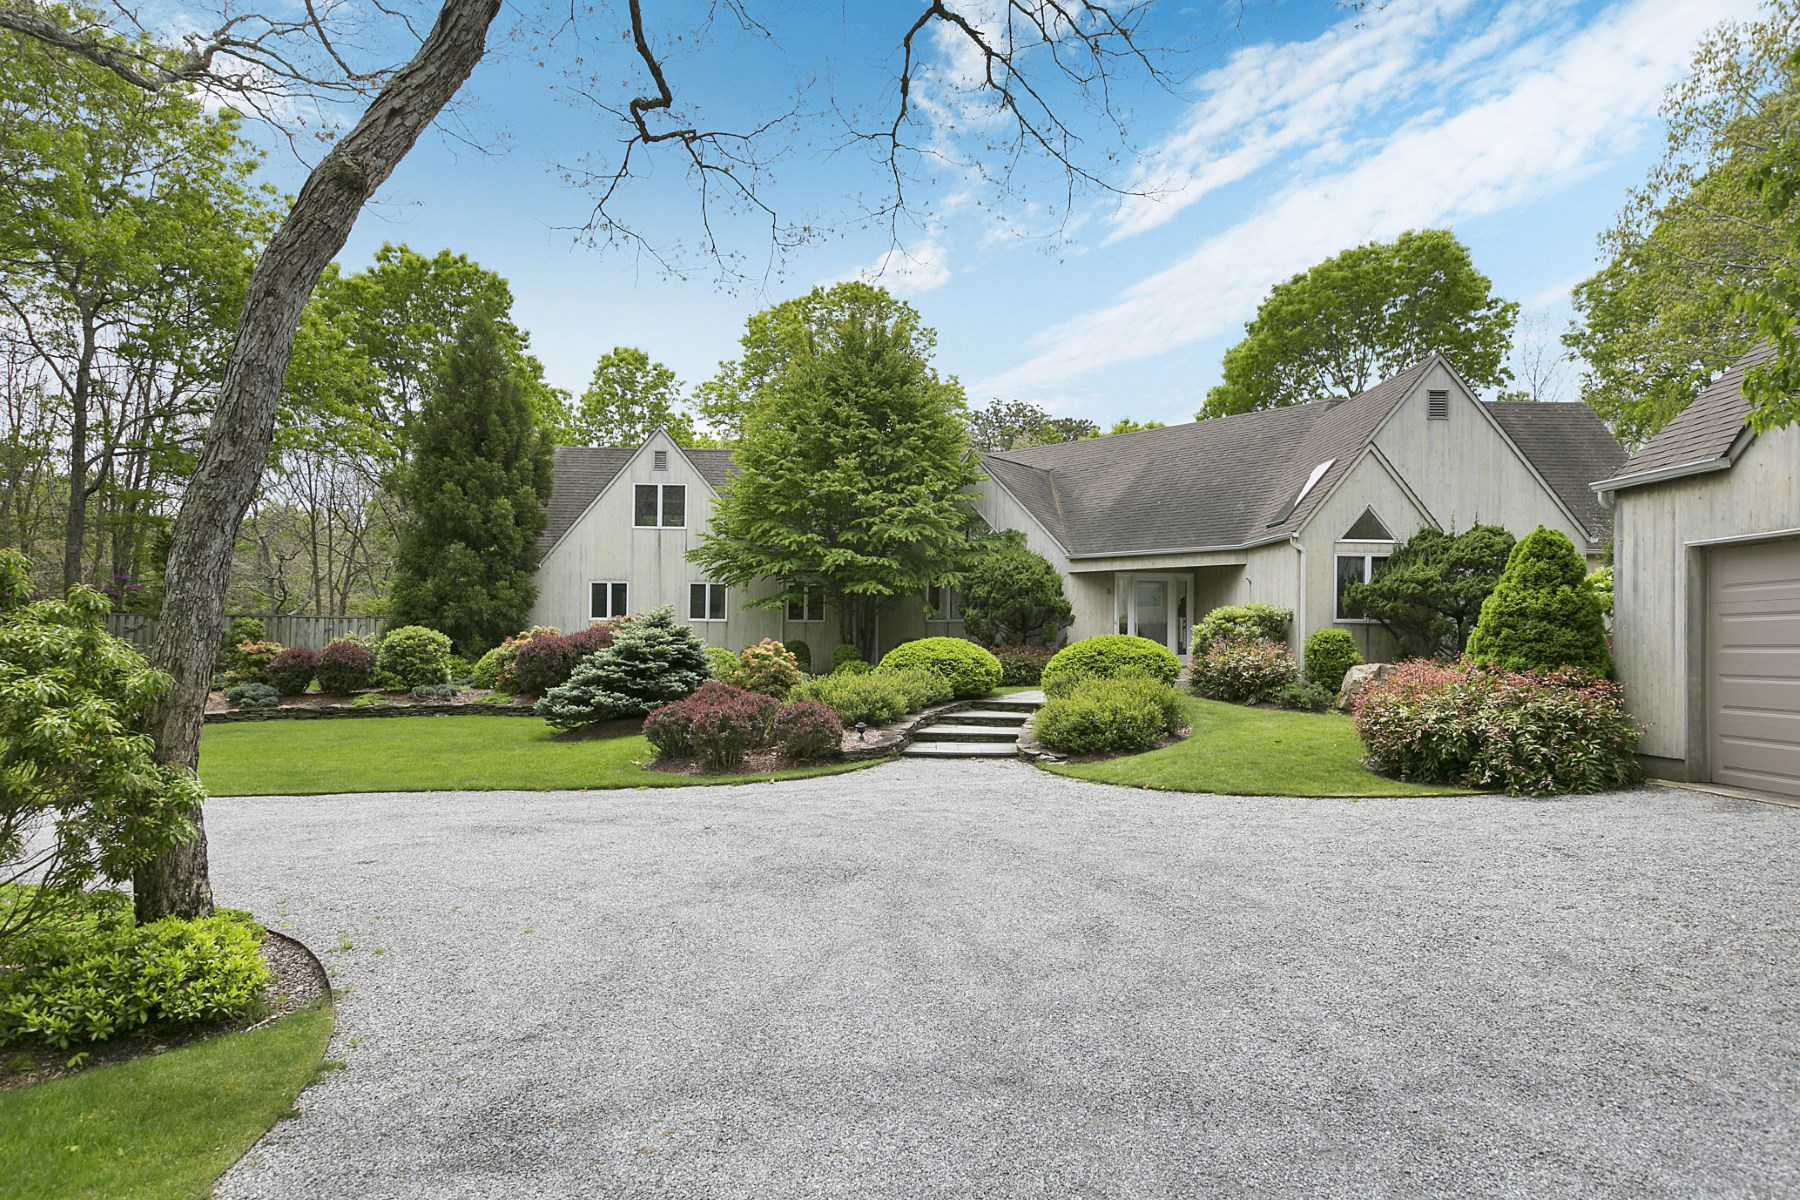 Single Family Home for Rent at Private Contemporary with Pool & Tennis 5 Ely Brook To Hands Creek Road East Hampton, New York 11937 United States